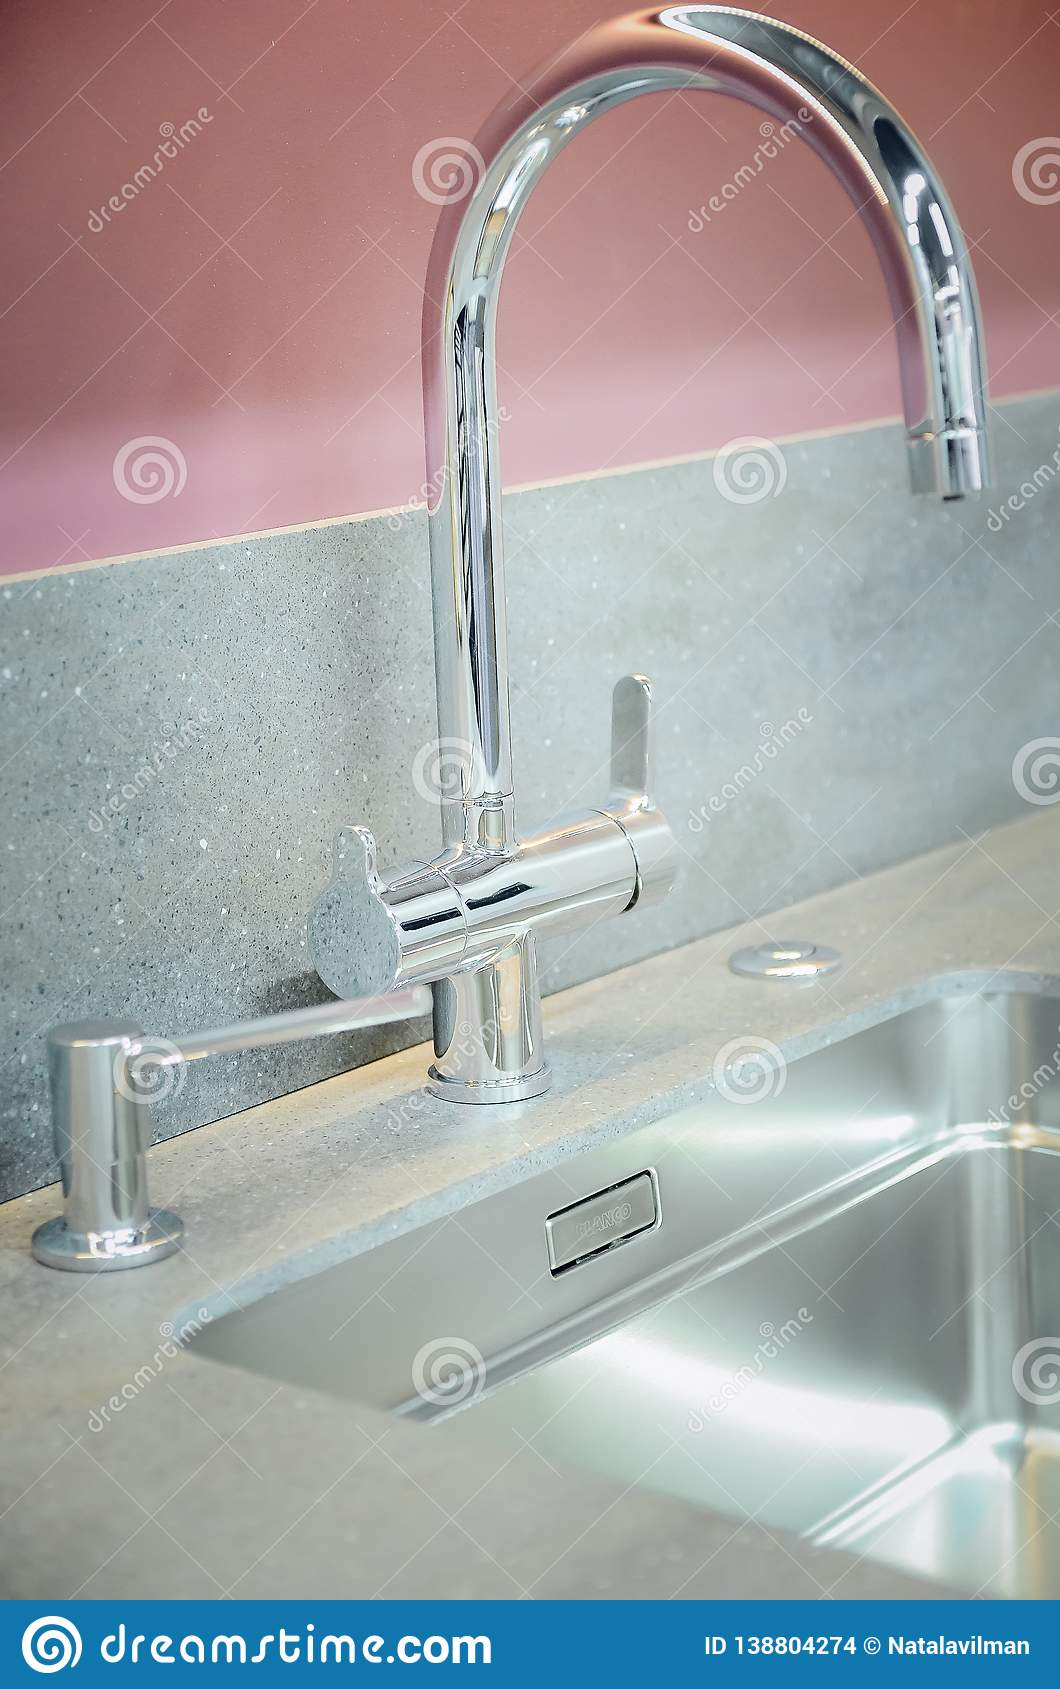 A new kitchen sink with an artificial stone countertop. The concept of modern kitchen interior. Vertical photography. Closeup,